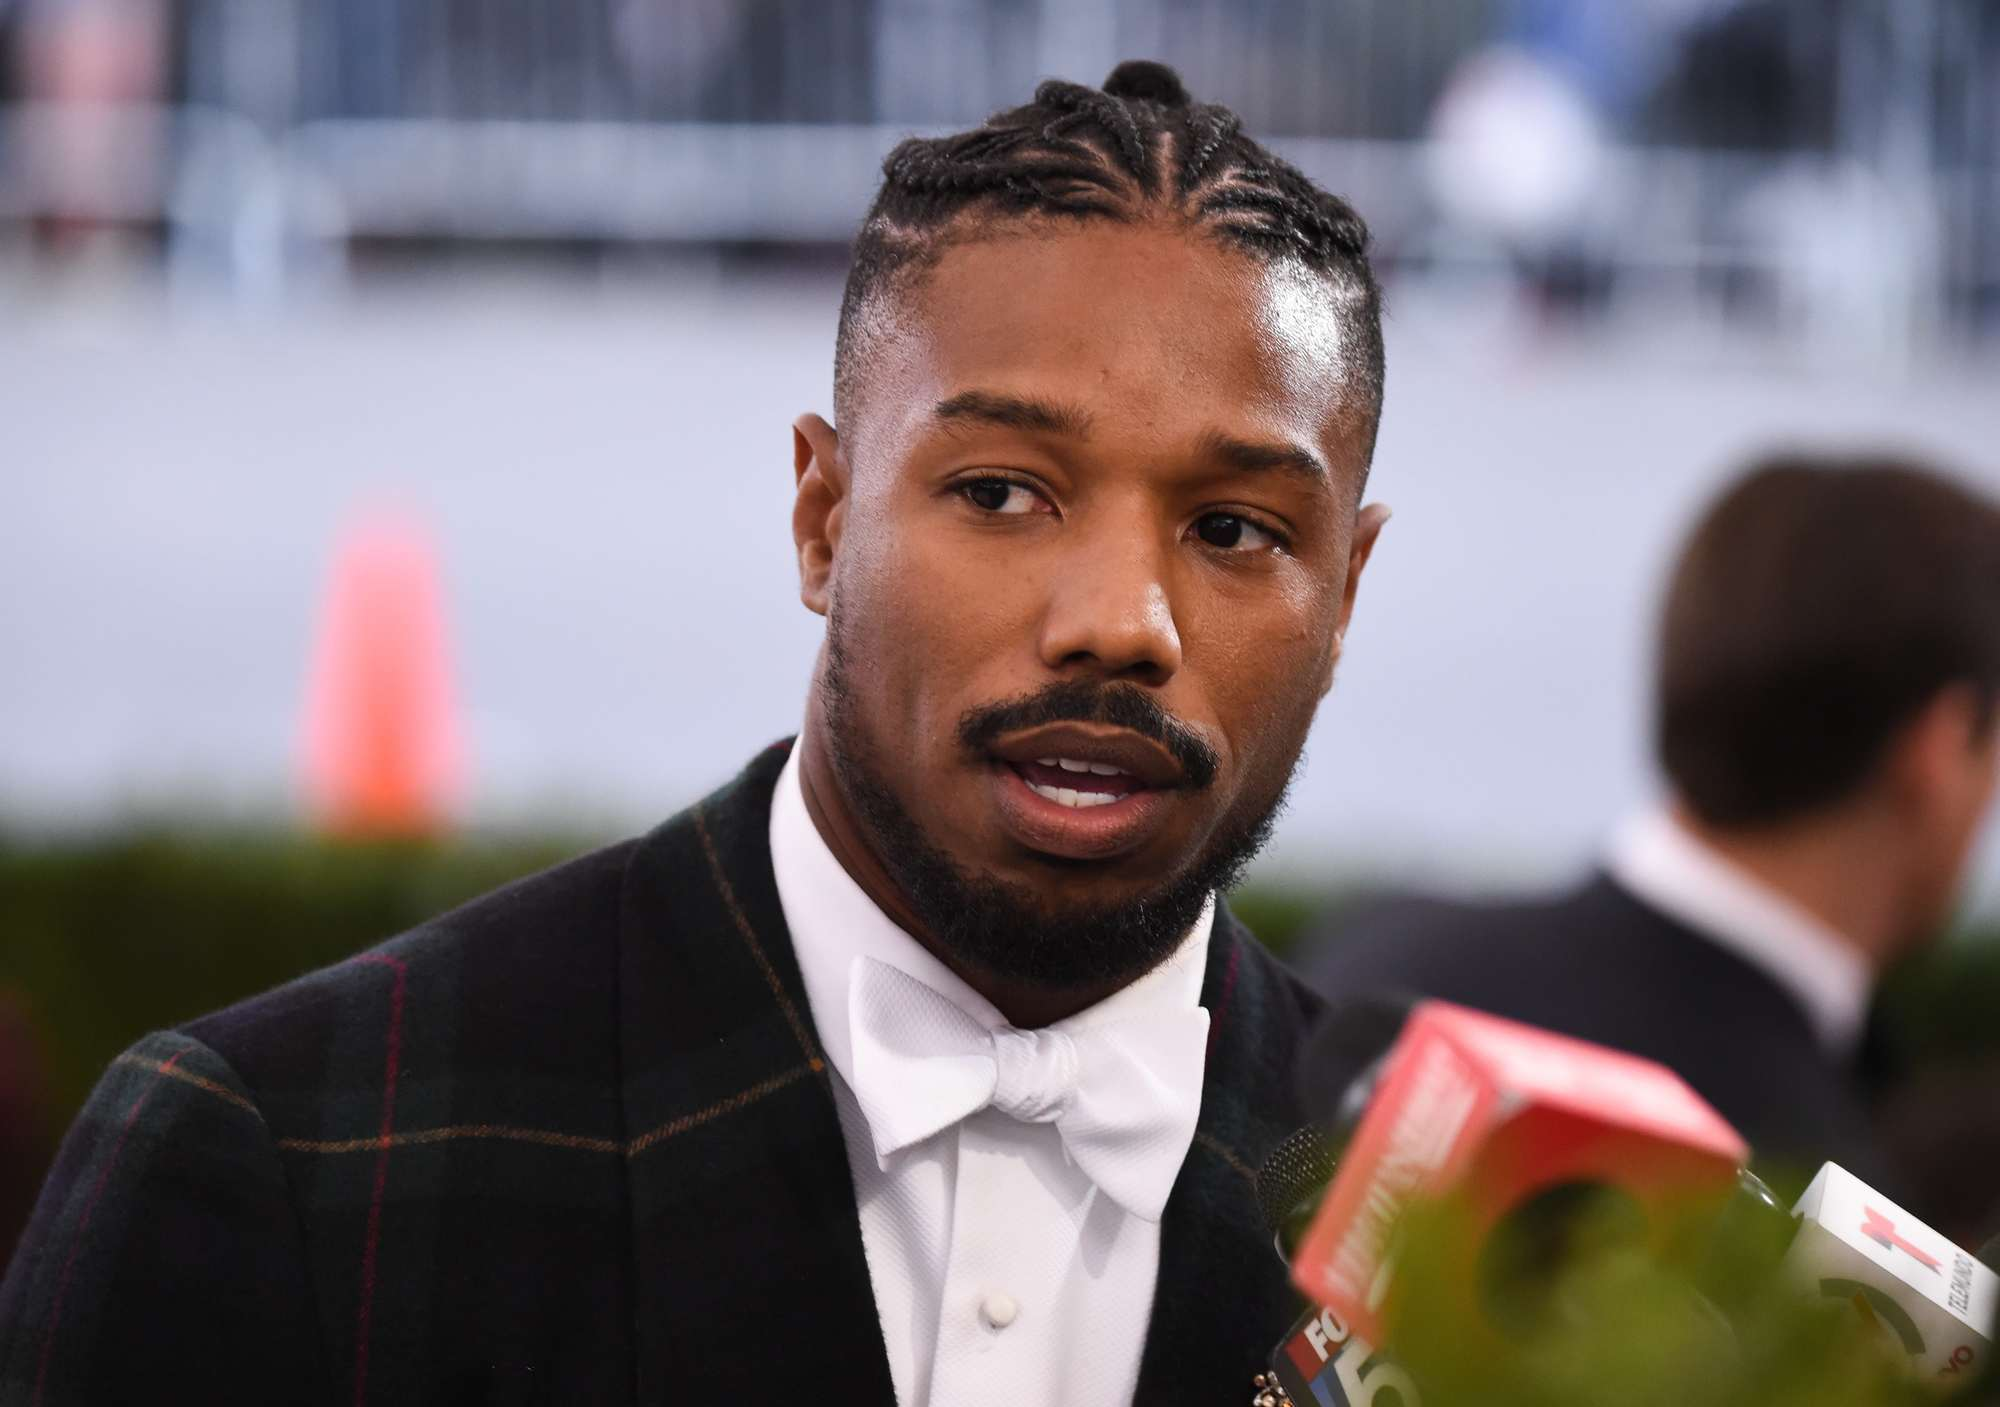 Met Gala Hairstyles 2018 Best Men S Hair Looks From The Night